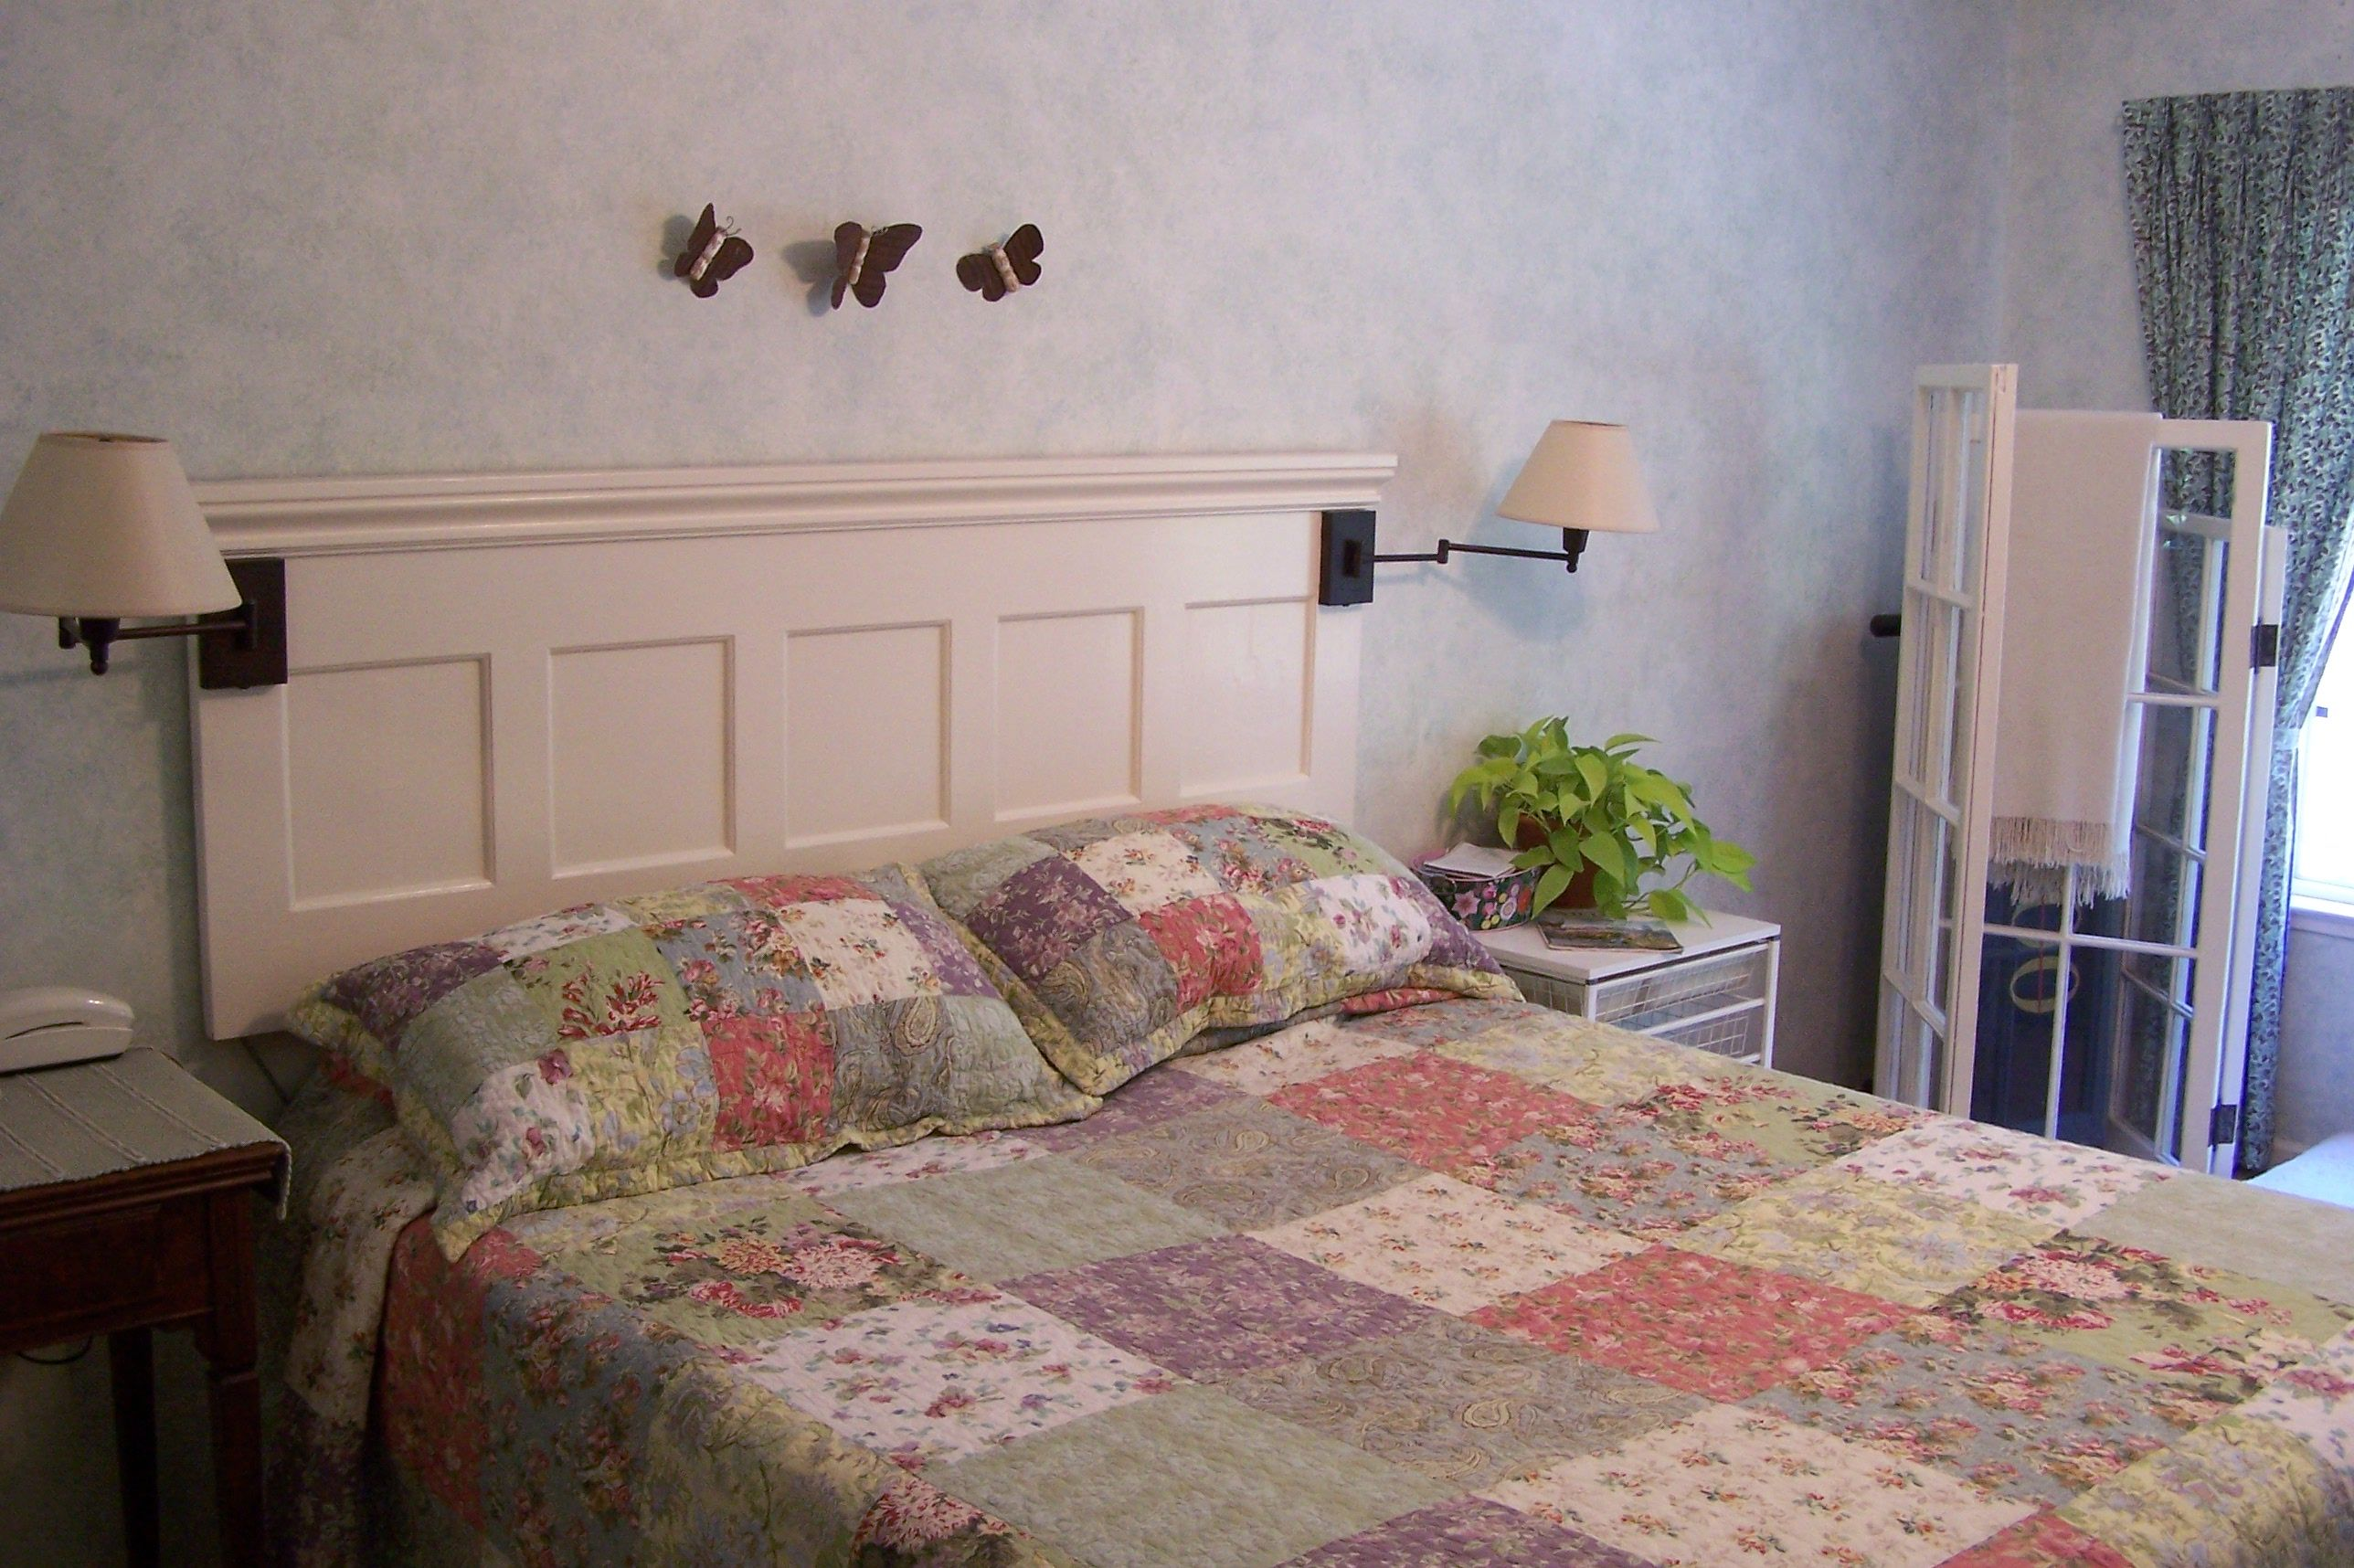 Headboard was made from redwood paneling and trim found at the salvage yard. kim*